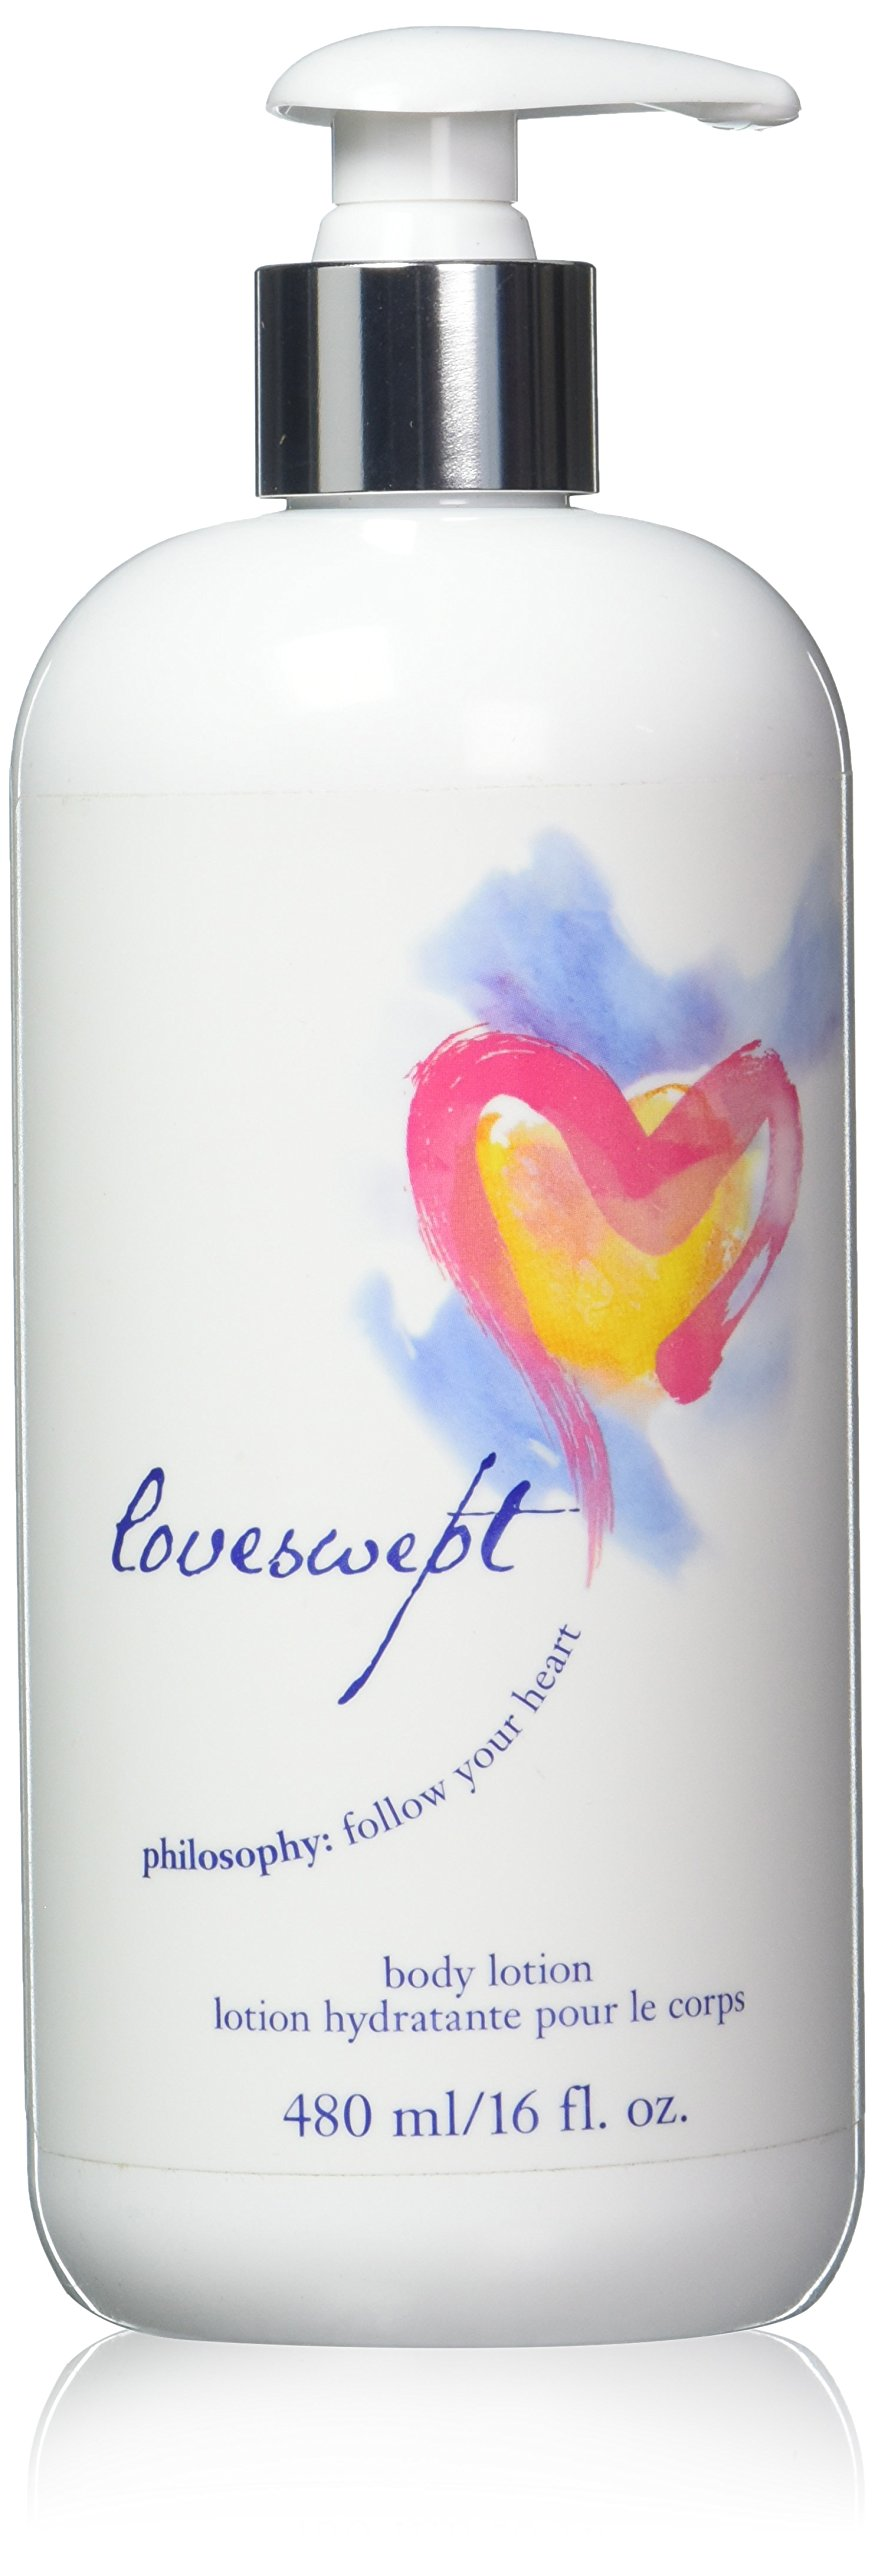 Philosophy Love Swept Body Lotion, 16 Ounce by Philosophy